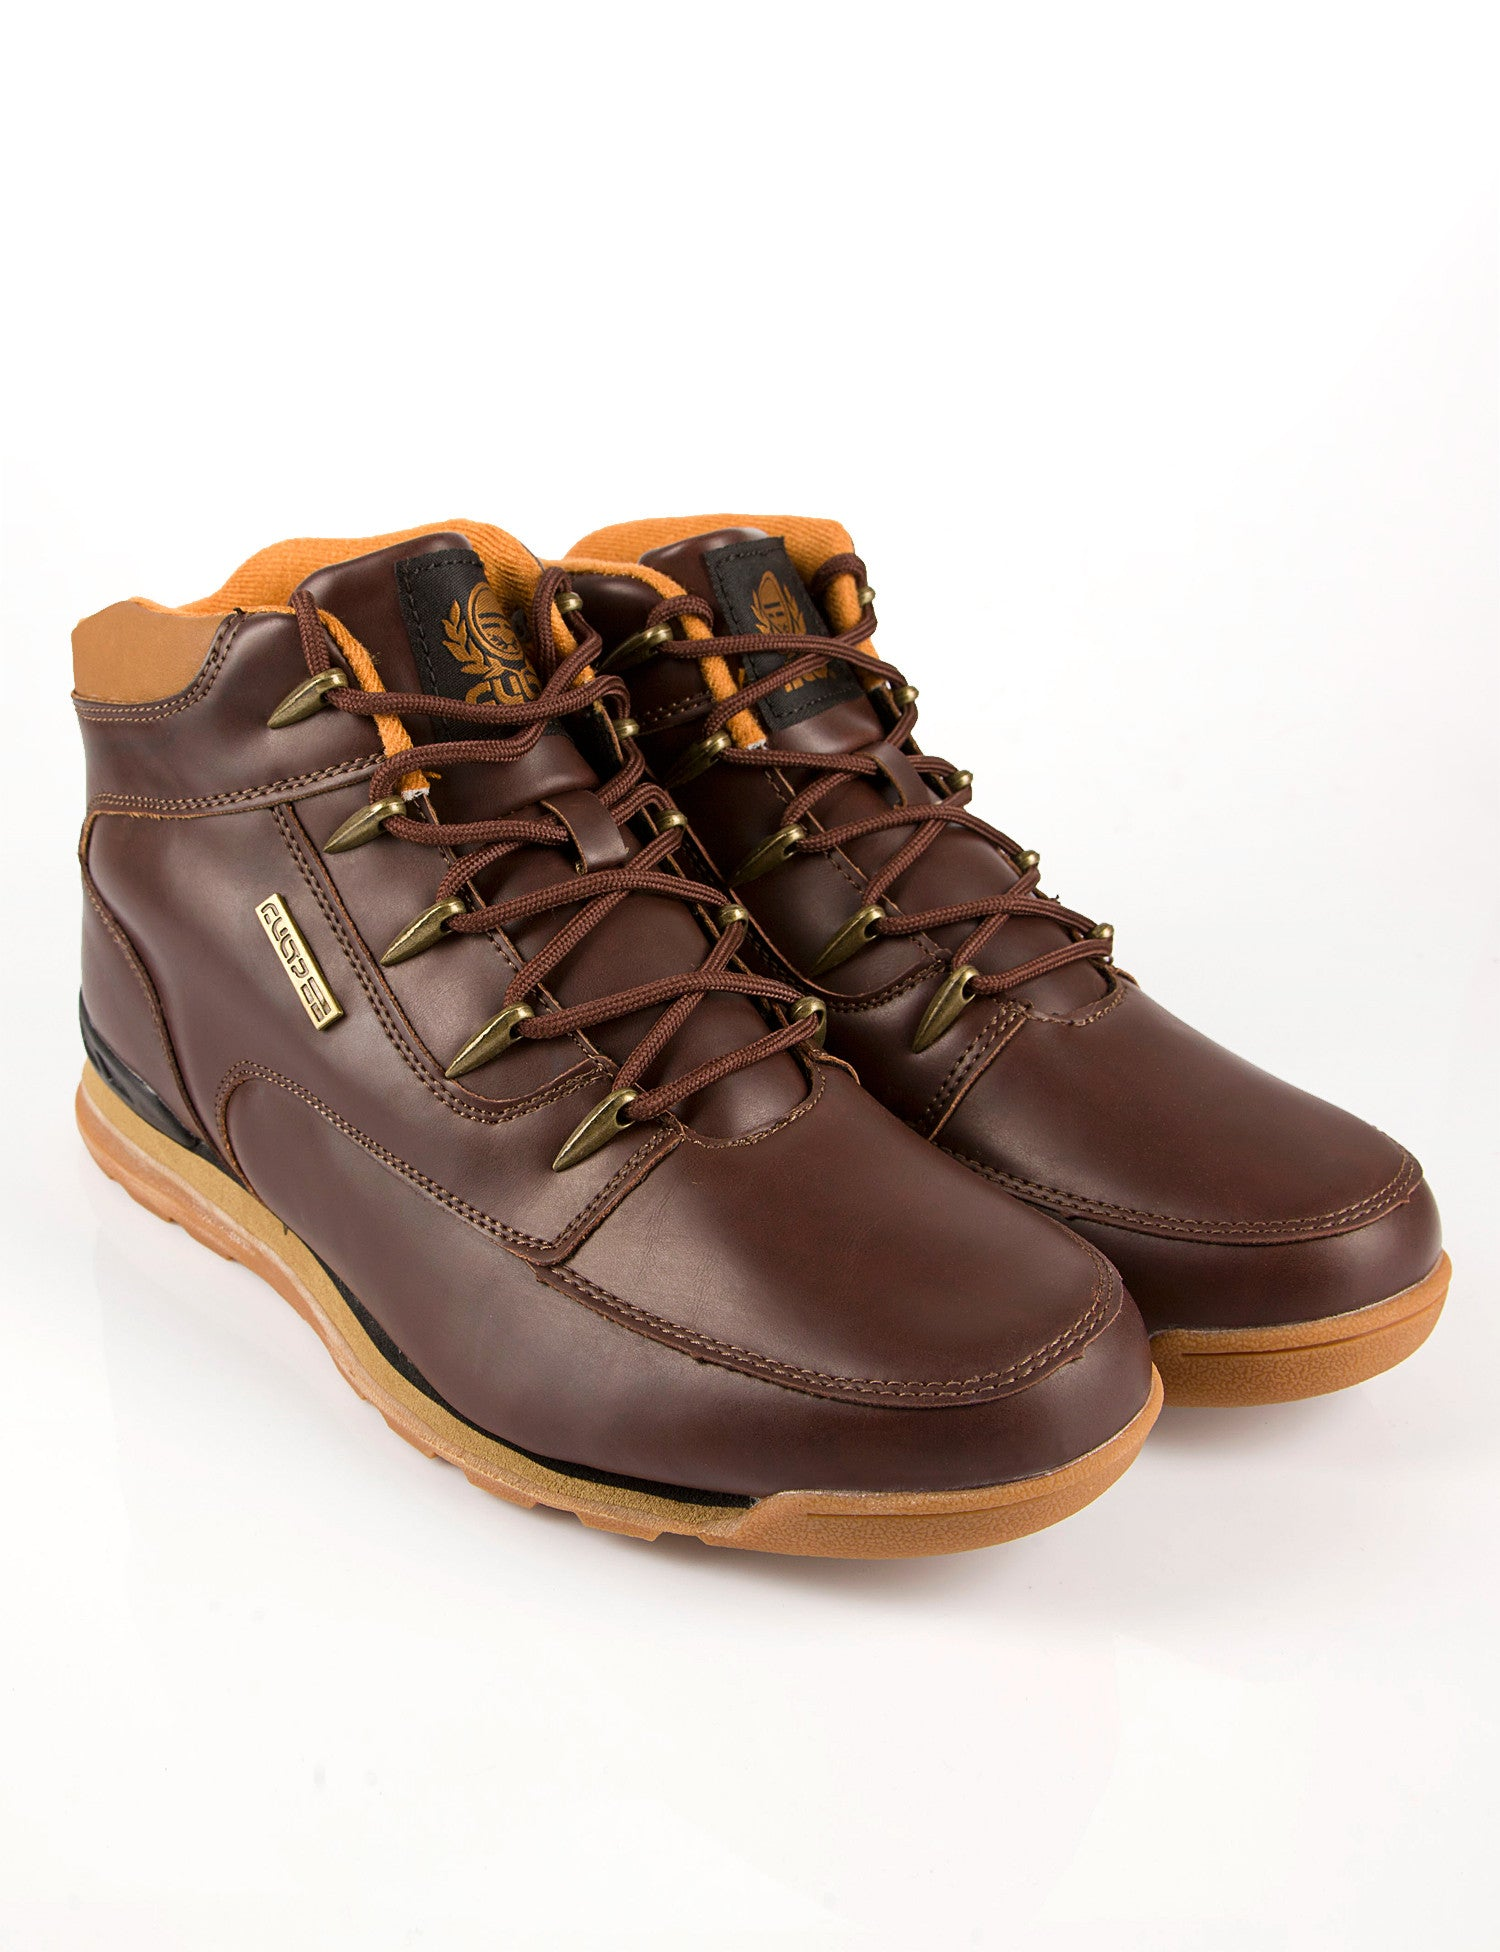 Image of 9-6930-2 Shoes  Brown